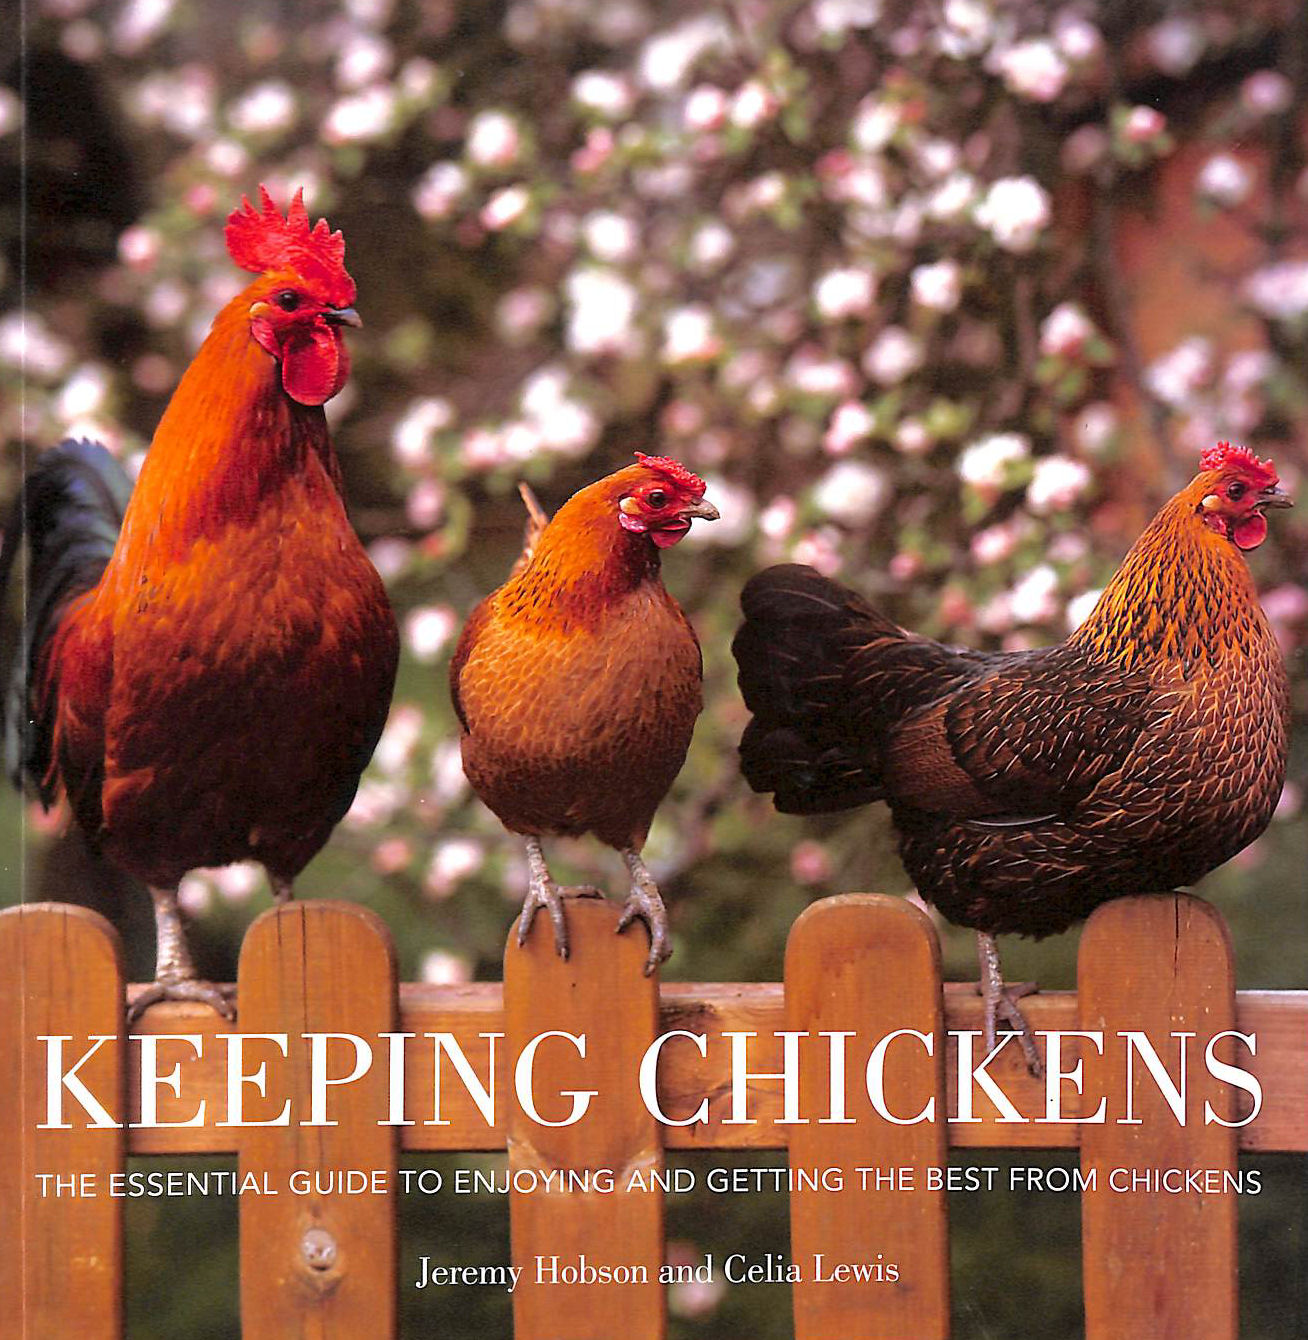 Image for Keeping Chickens: The Essential Guide to Enjoying and Getting the Best from Chickens